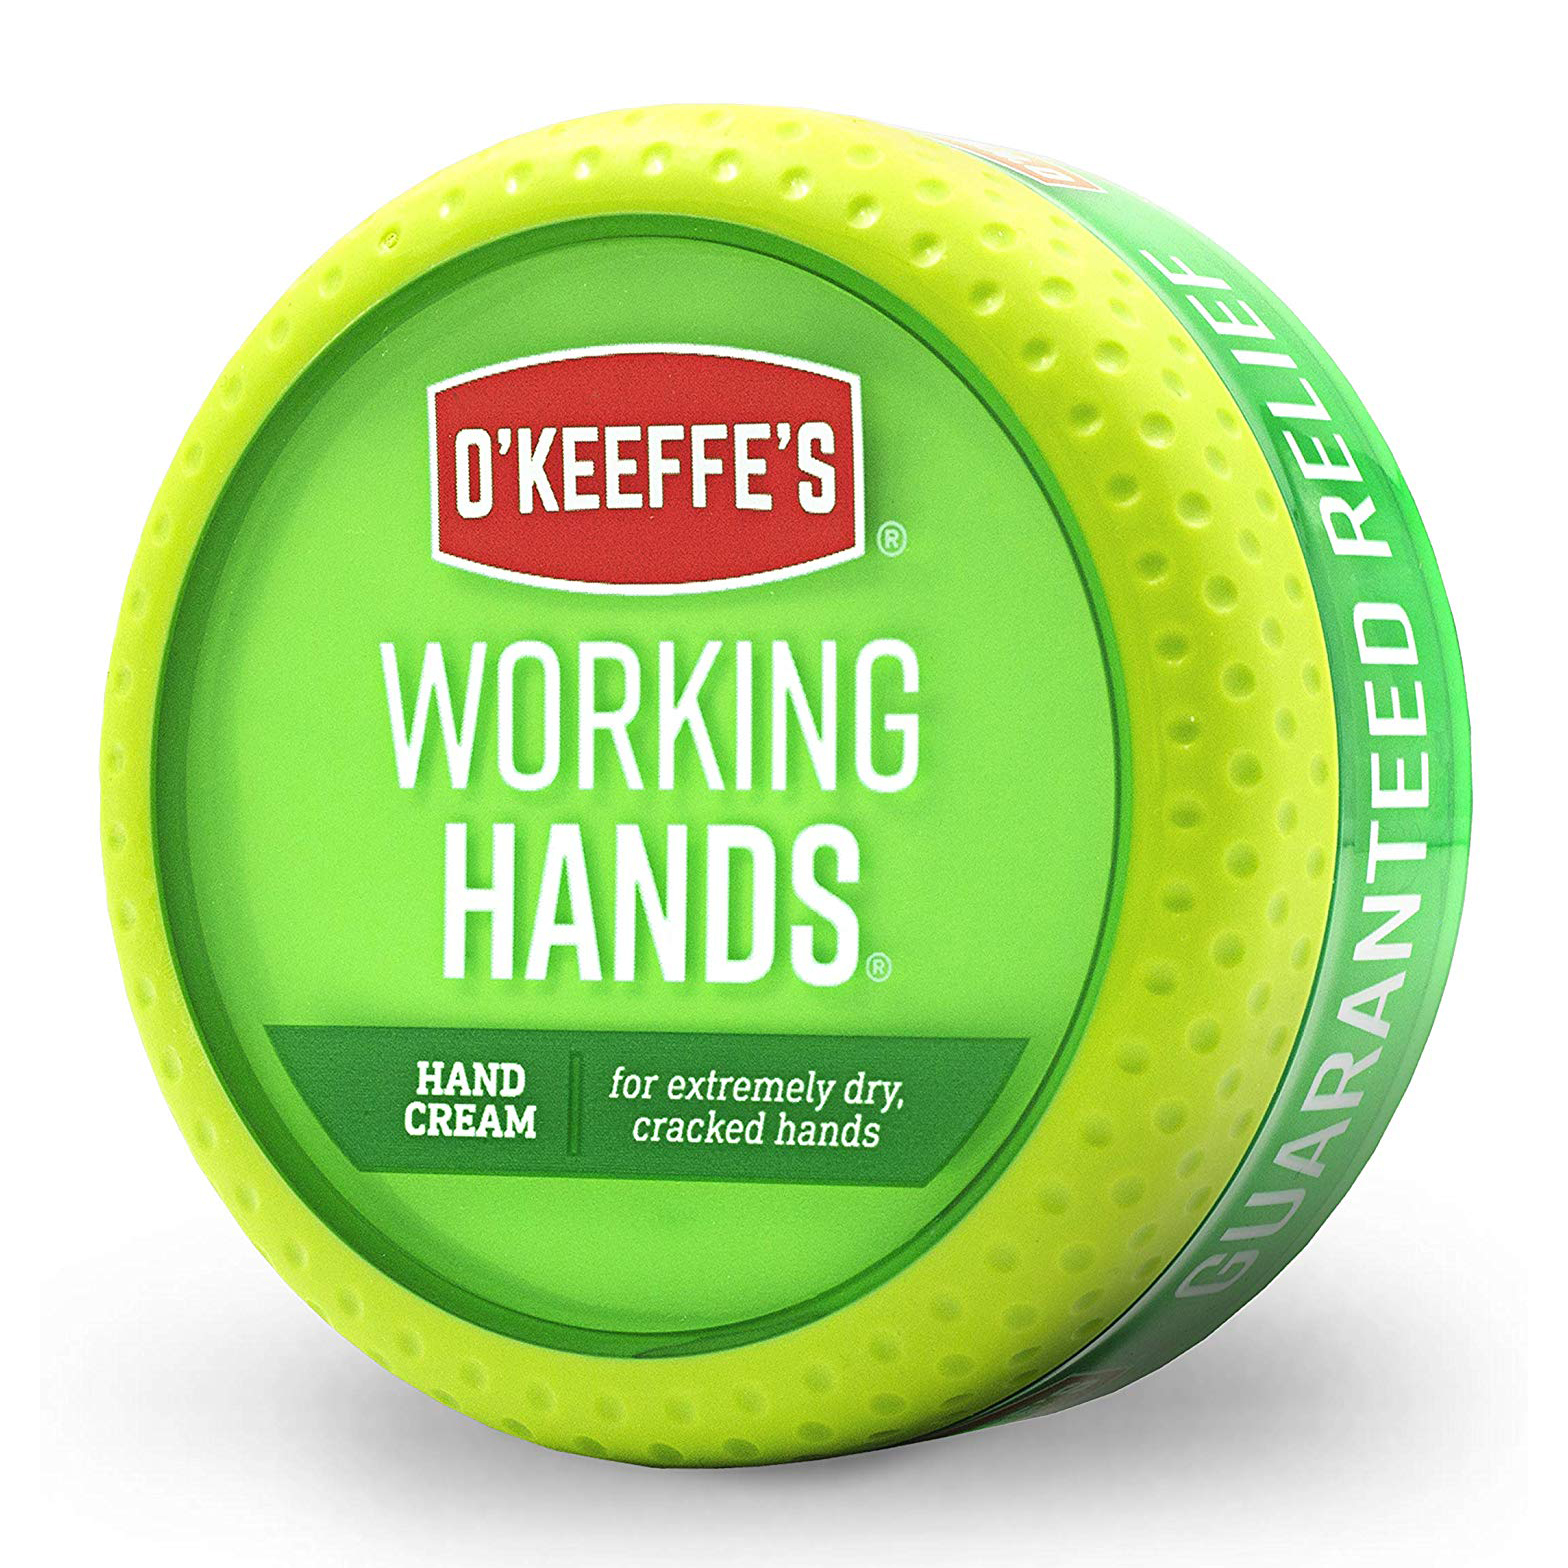 O'Keefe's Working Hands Hand Cream for winter skin